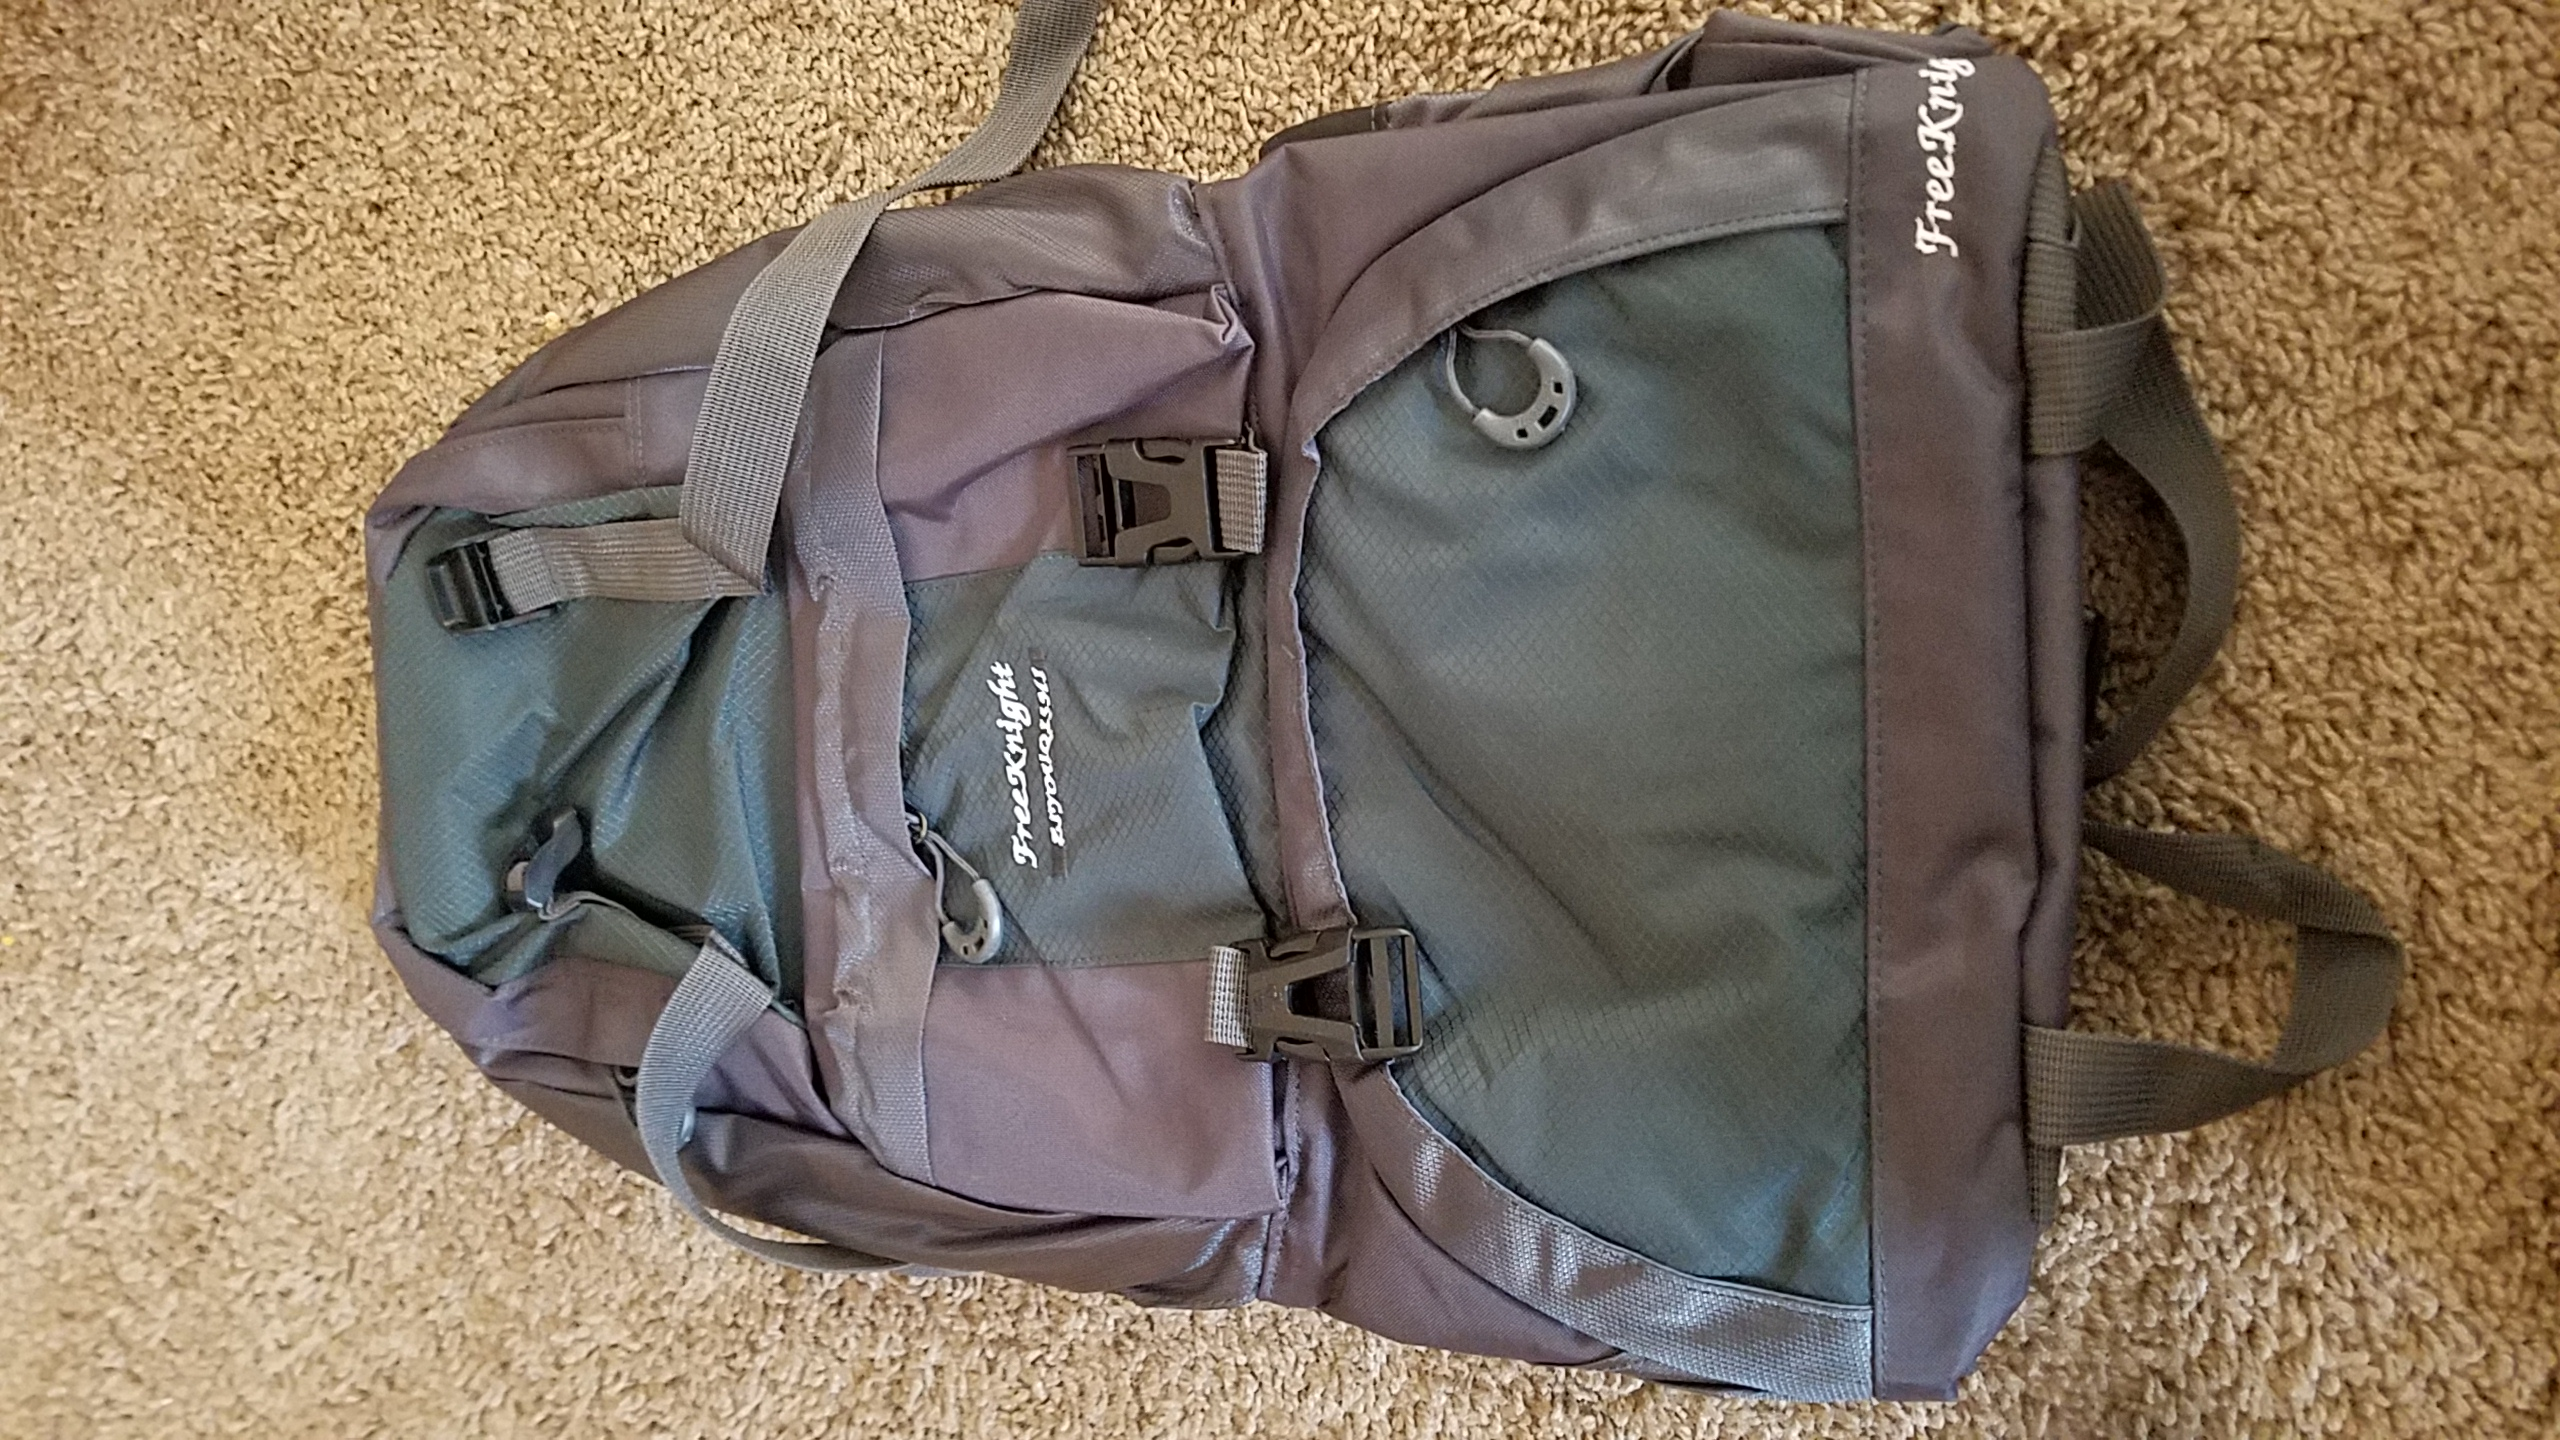 Decent sized backpack for its price.